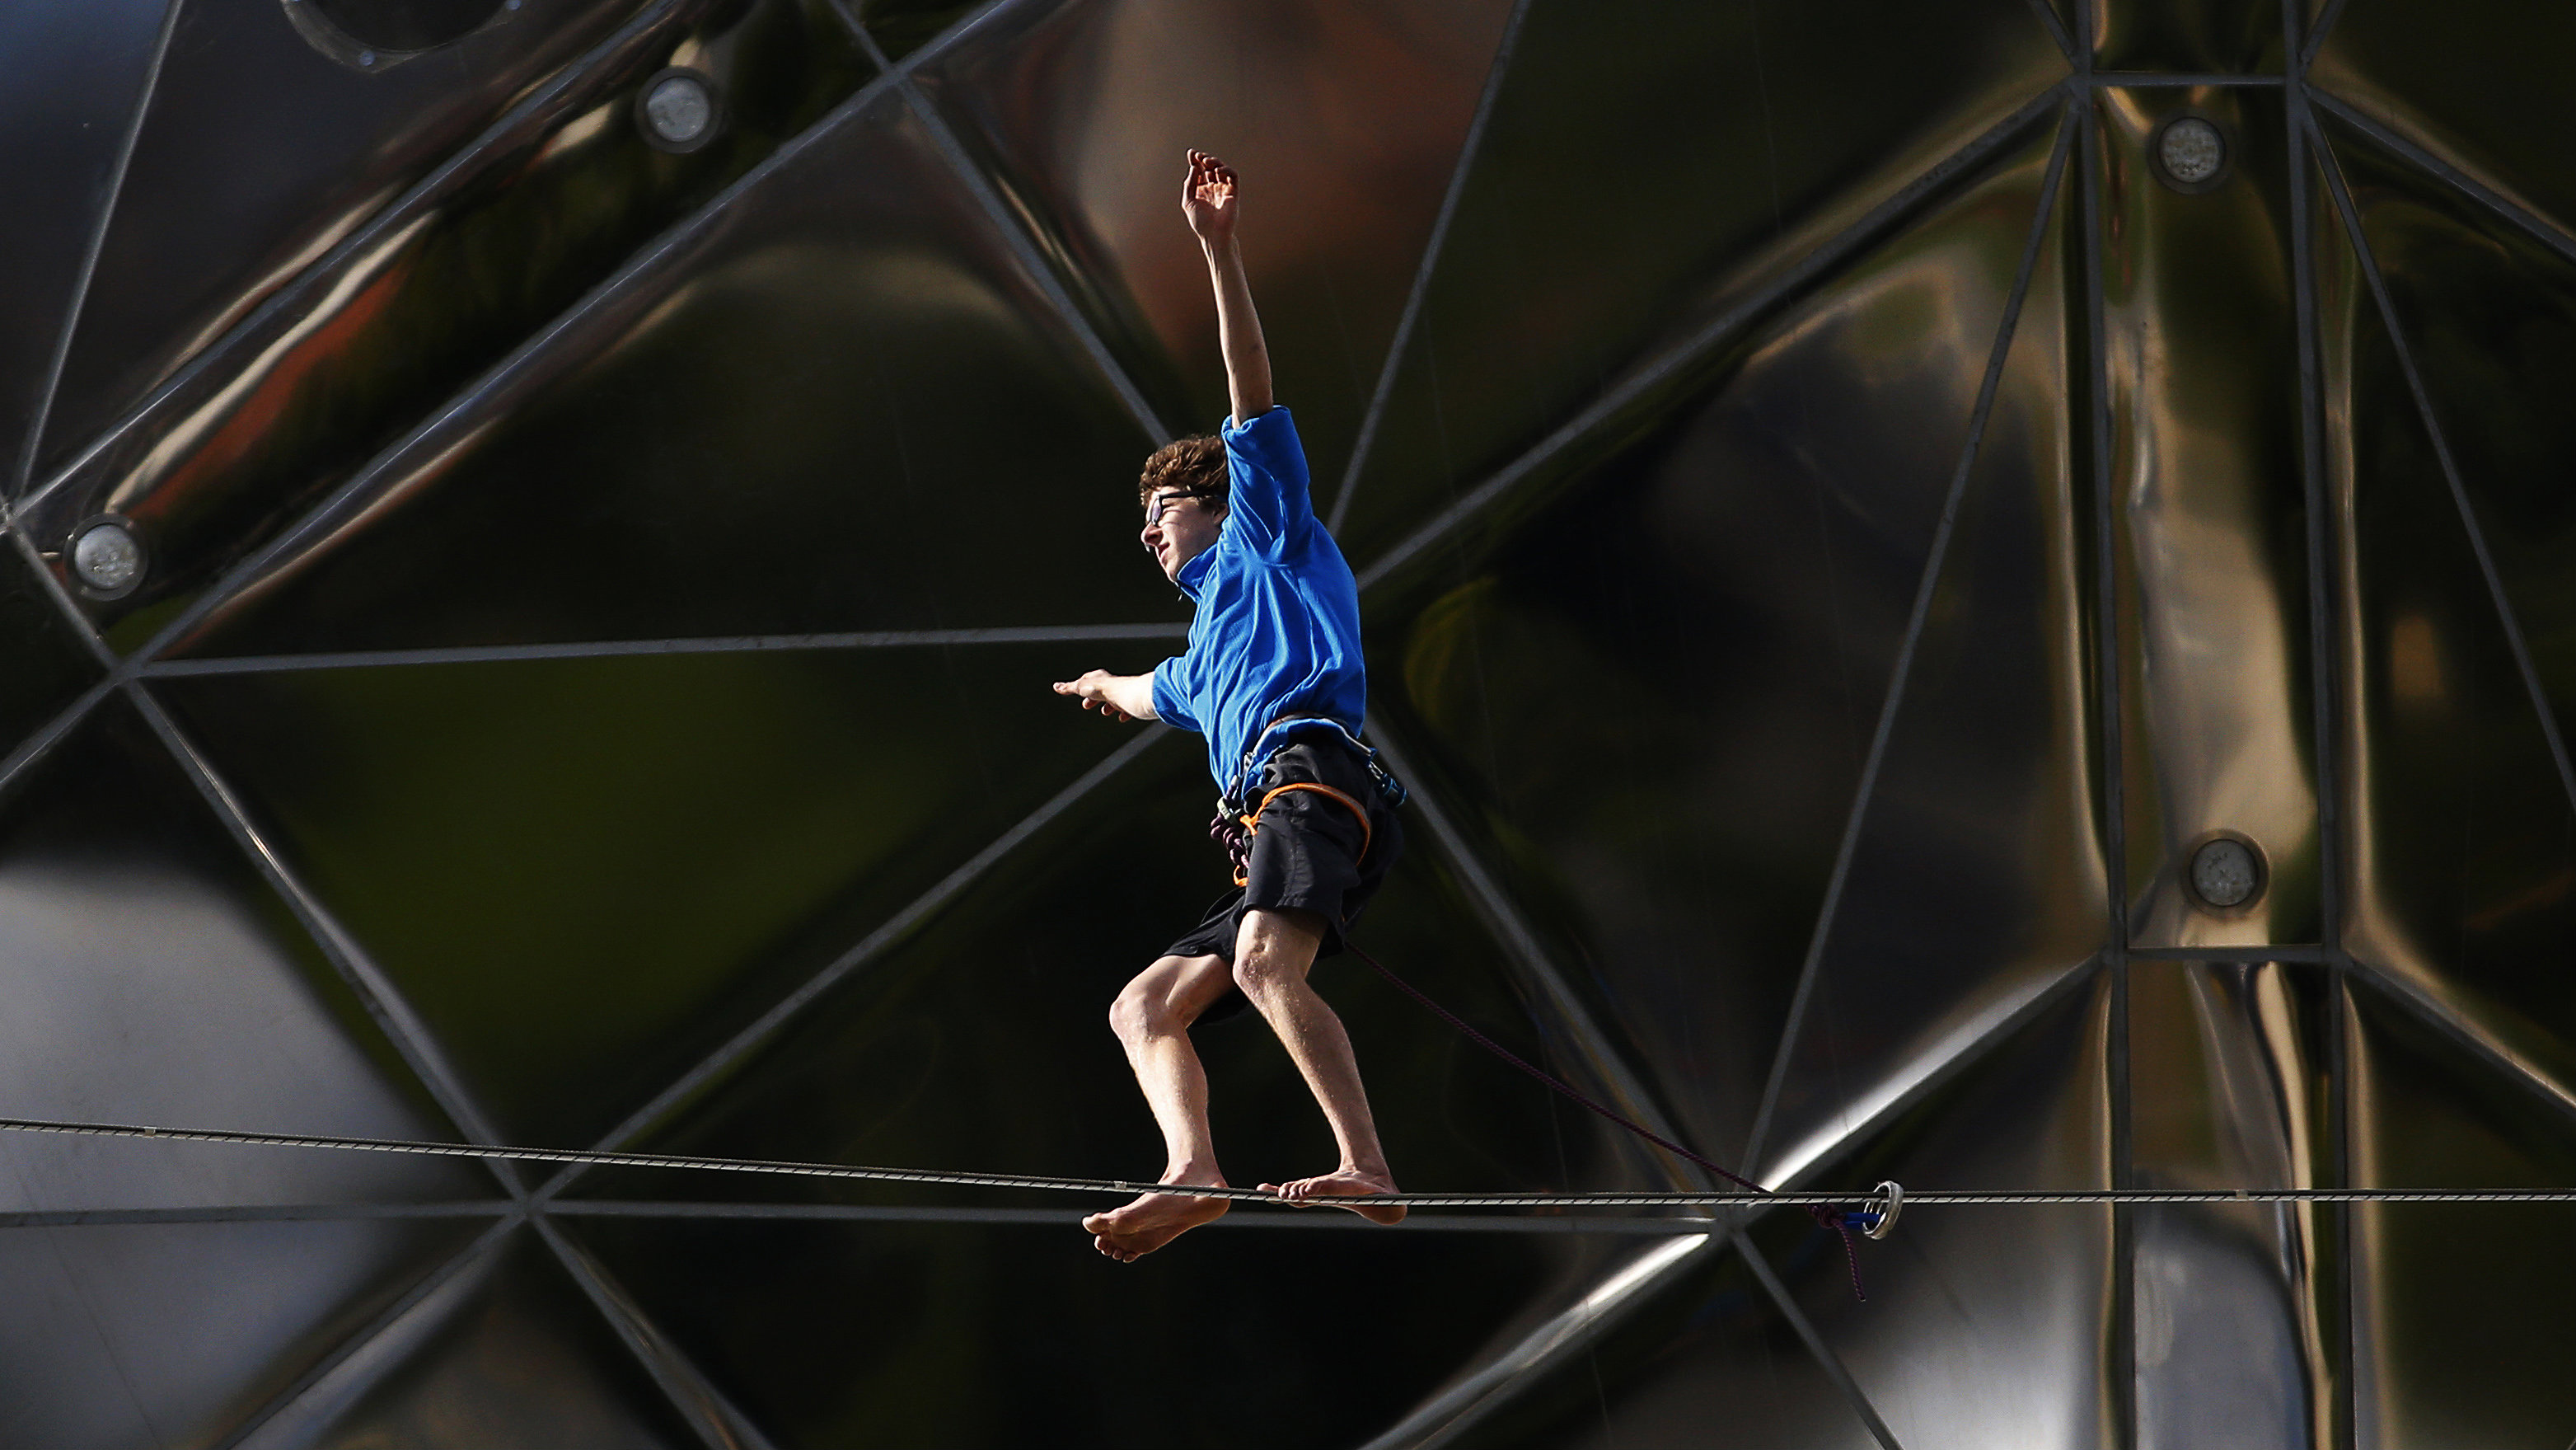 A tightrope walker performs between two spheres of the Atomium monument in Brussels August 11, 2014. The 102-metre-tall (335-feet-tall) structure and its nine spheres, which was designed for Expo 58, is in the shape of a unit cell of an iron crystal, magnified about 165 billion times.